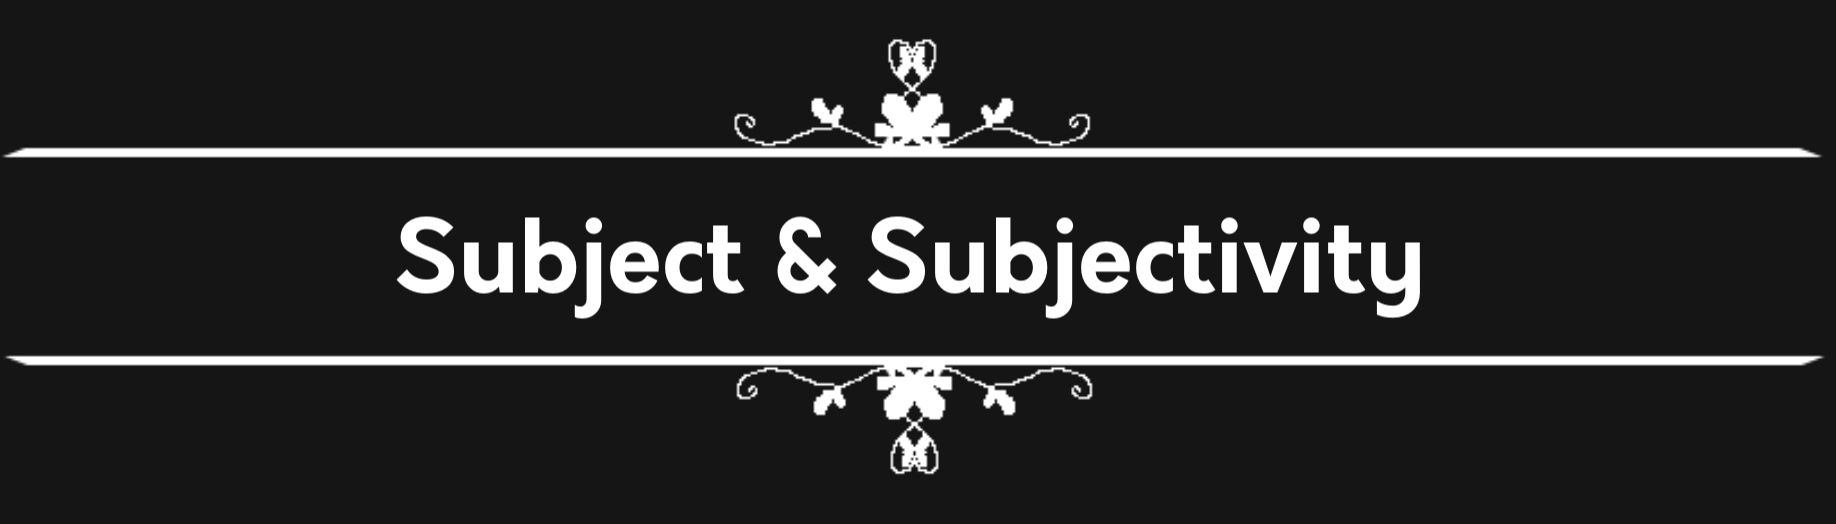 Subject and Subjectivity